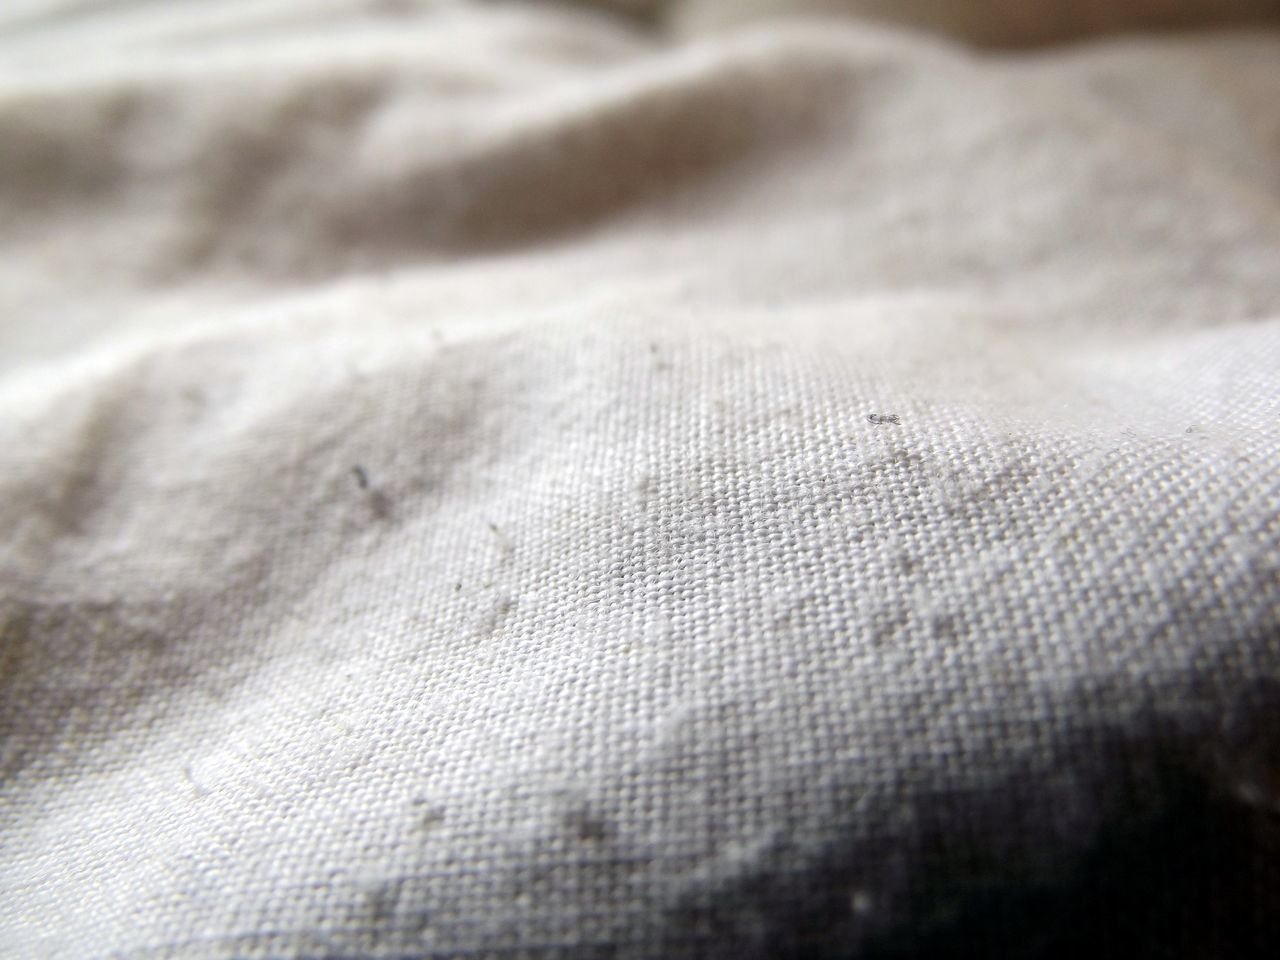 Backgrounds Bedsheet Close-up Cotton Cream Day Fabric Full Frame Indoors  Macro Macro Photography Material No People Super Macro Texture White